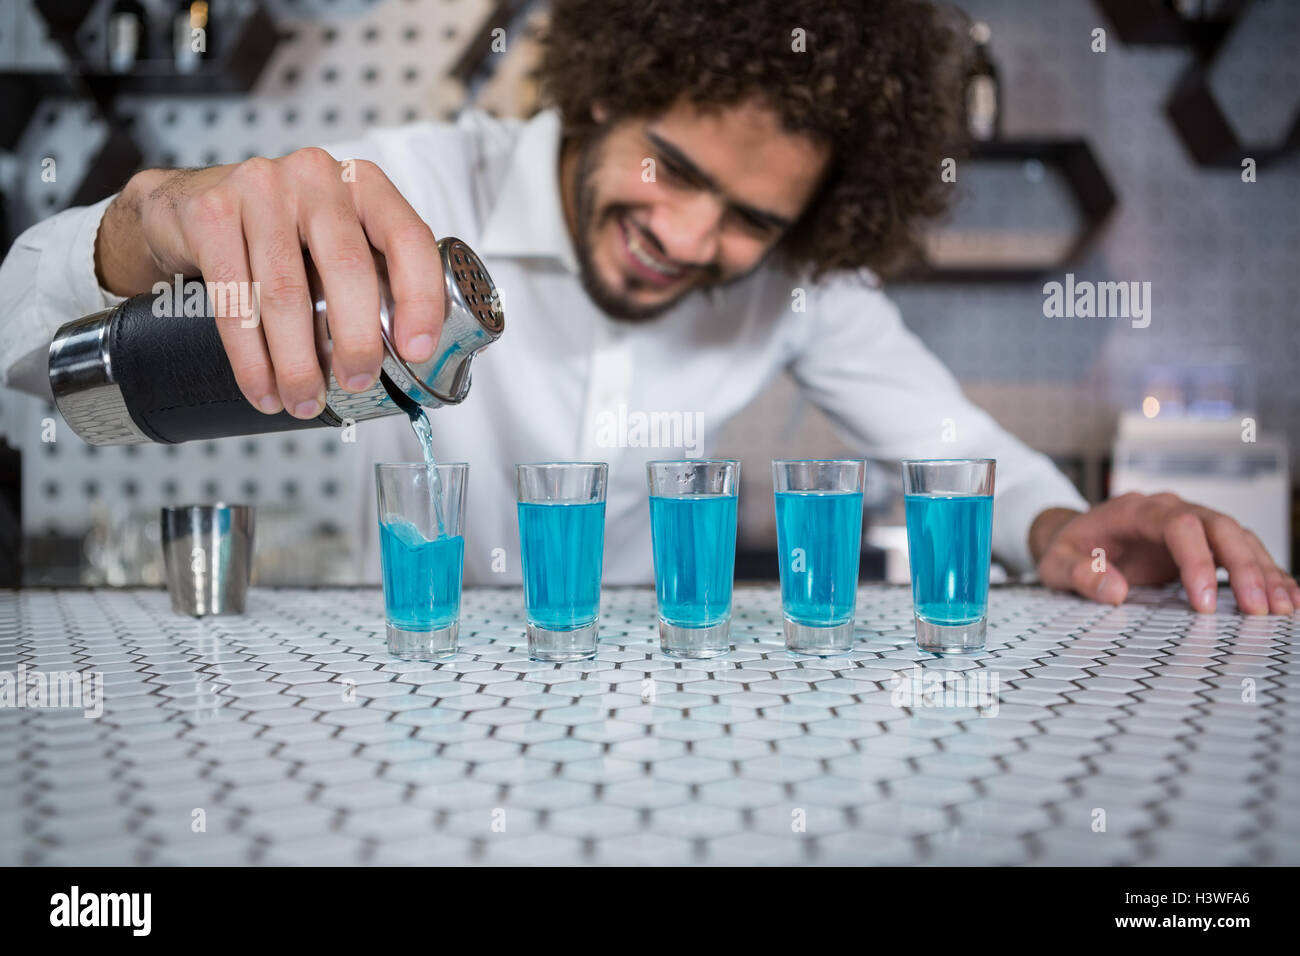 Bartender pouring cocktail into shot glasses - Stock Image